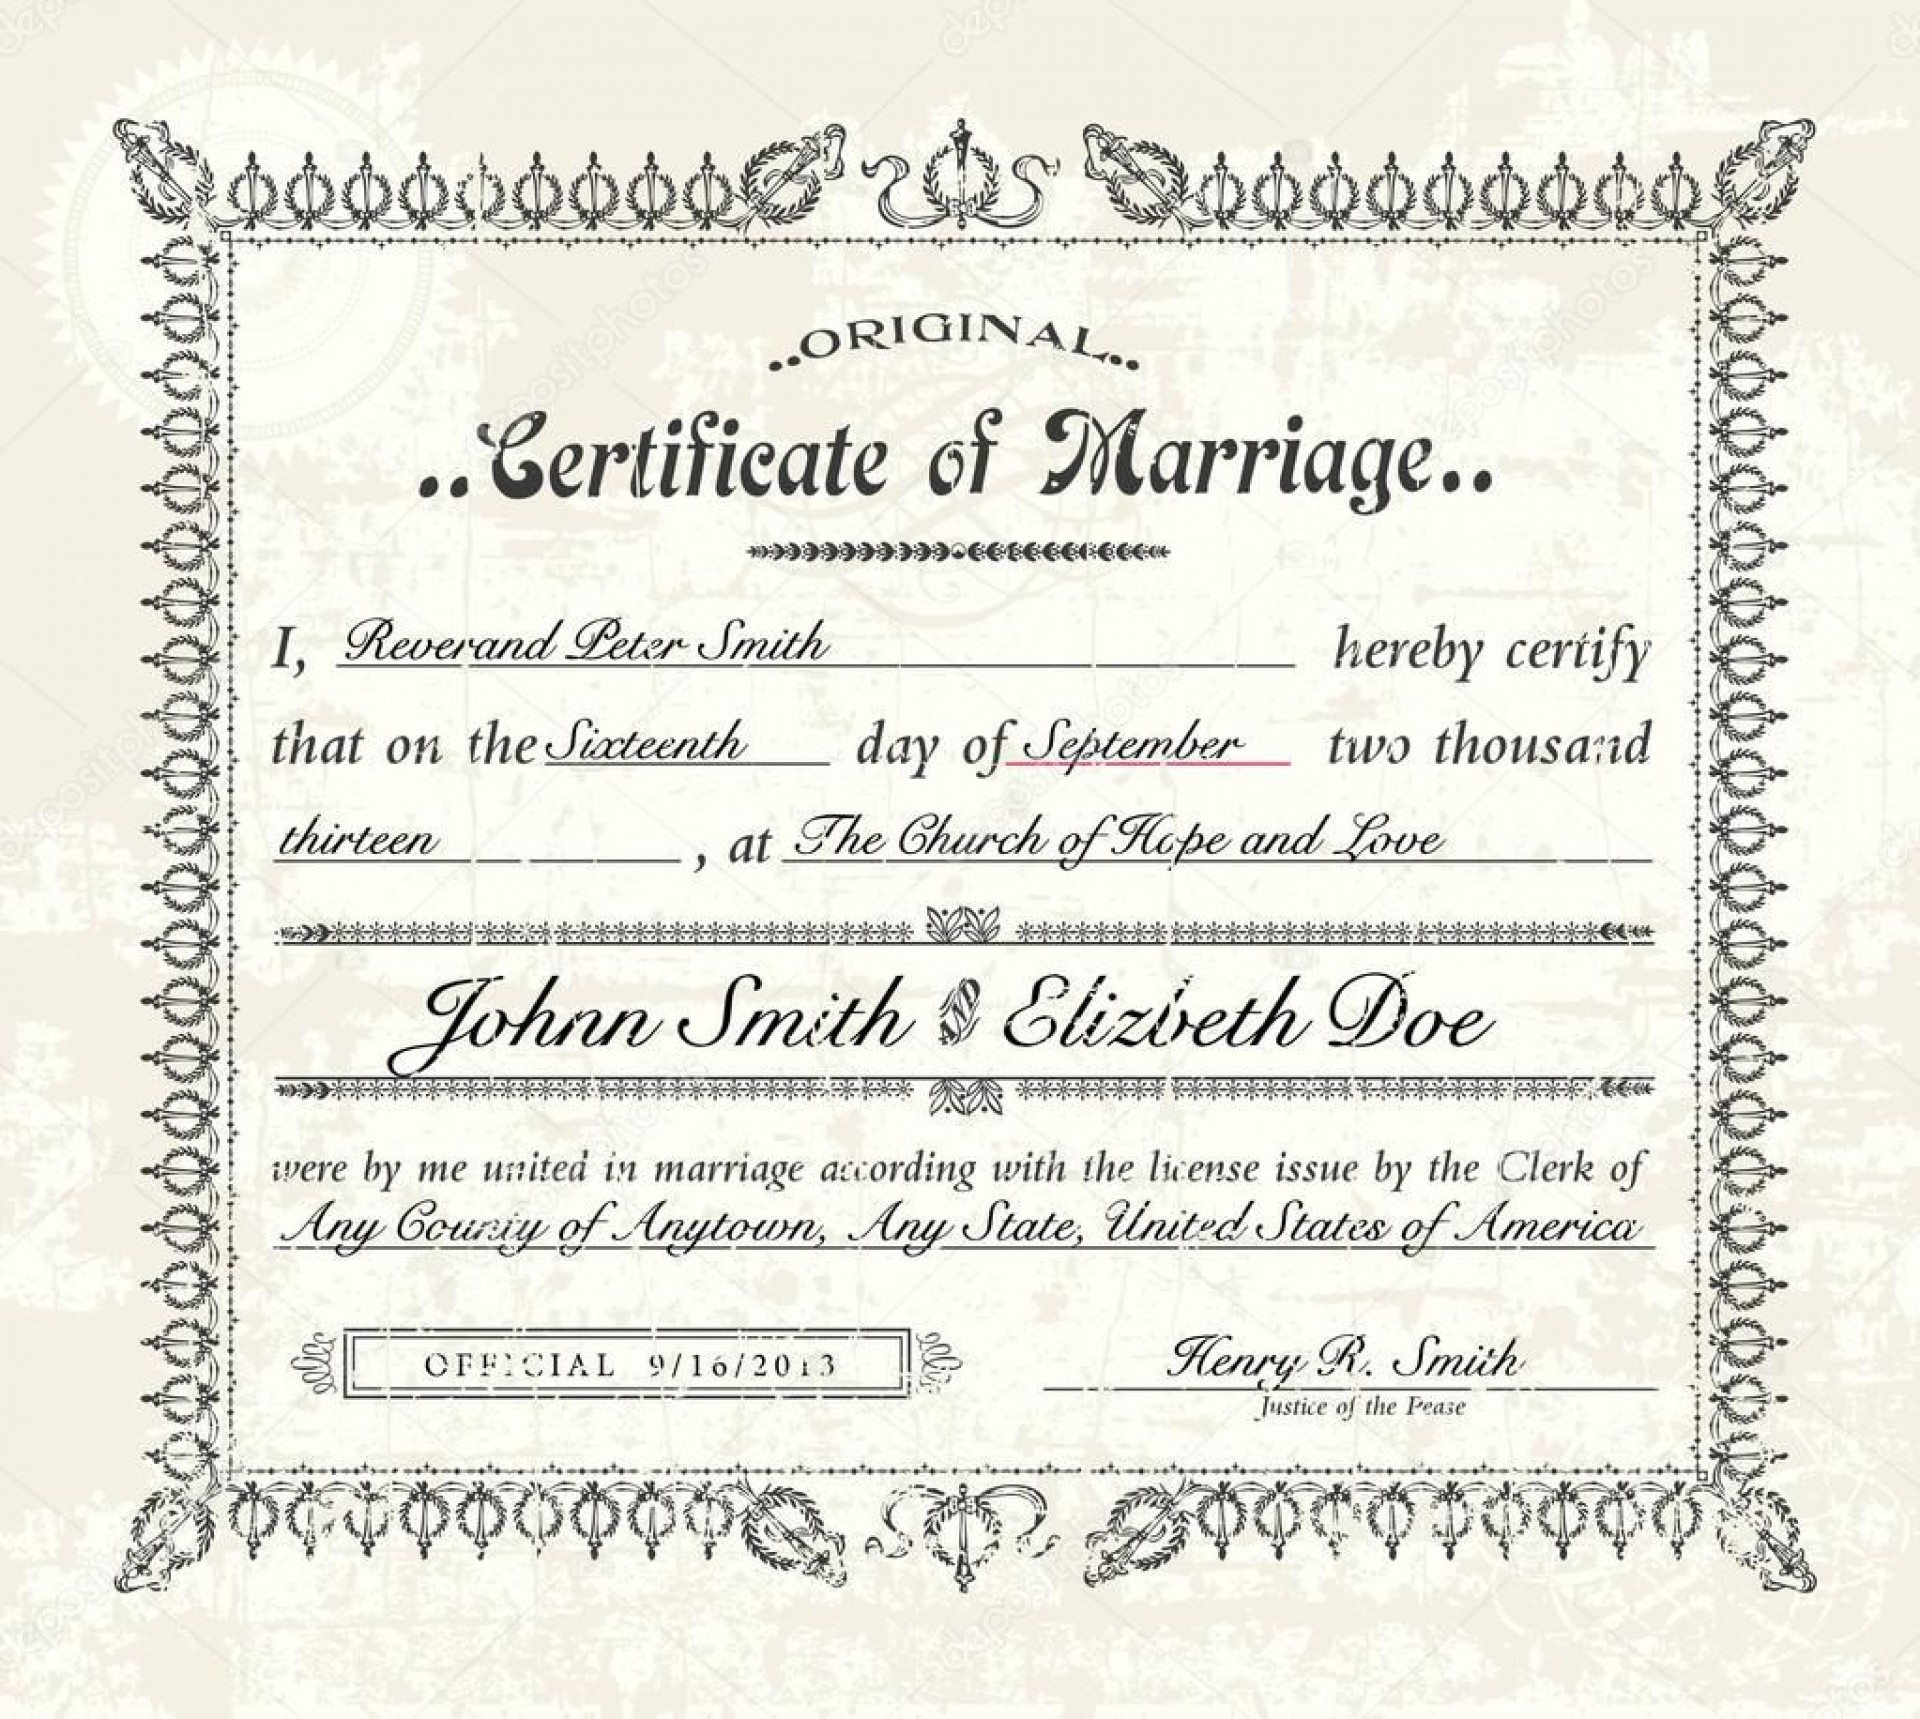 005 Excellent Certificate Of Marriage Template Image  Word Australia1920